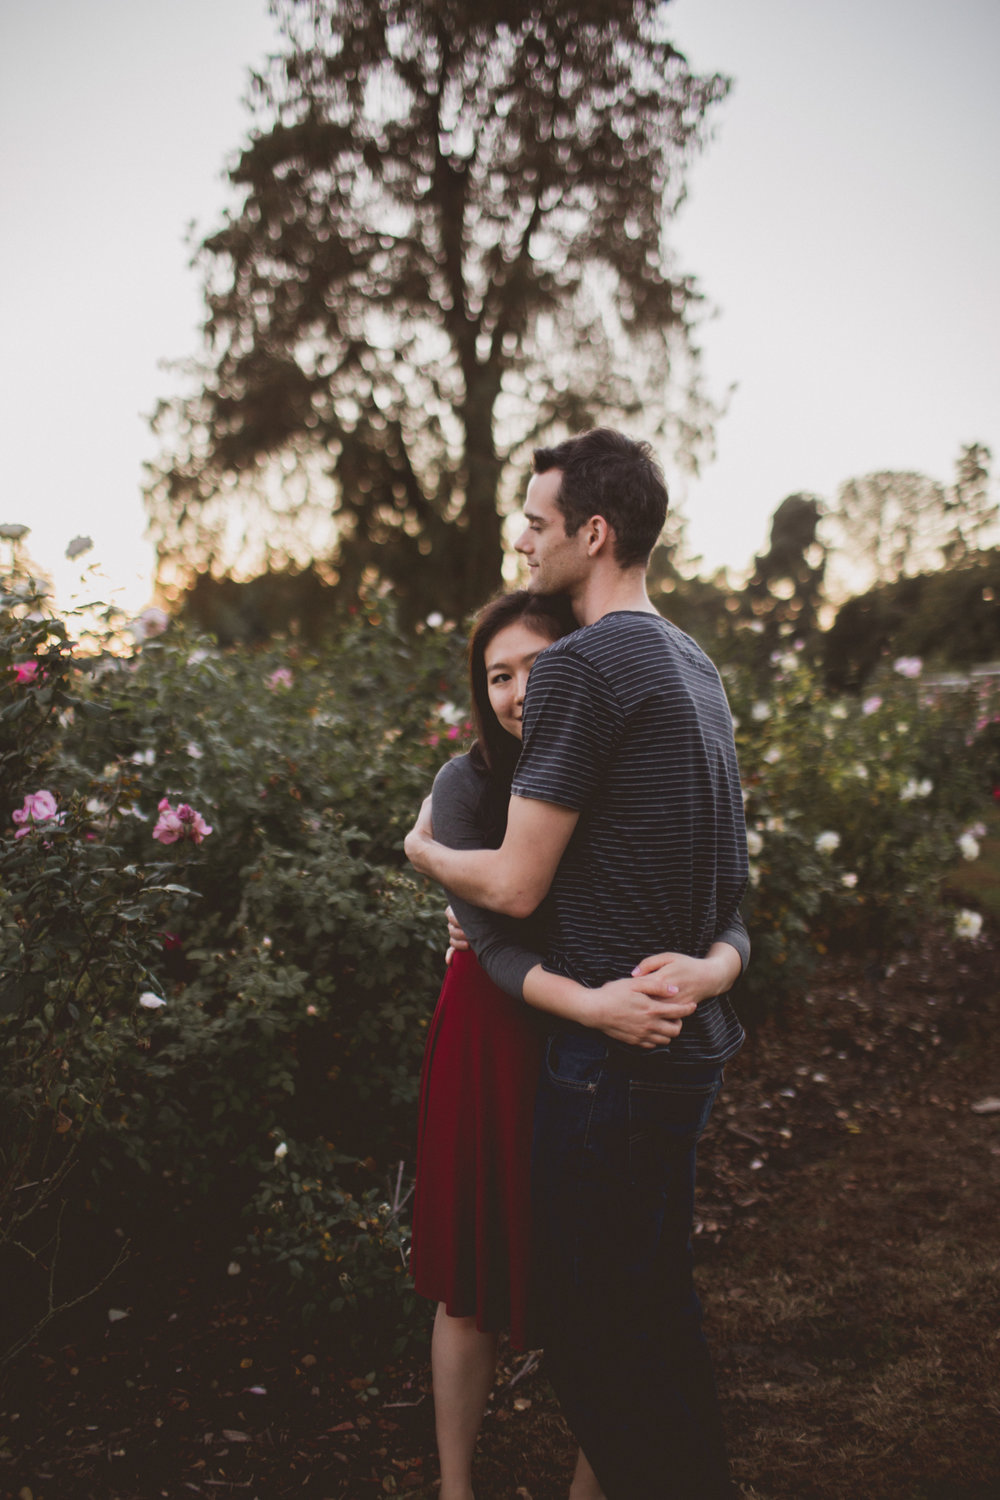 sarah-nate-pasadena-engagement-session-los-angeles-wedding-photographer-28.jpg